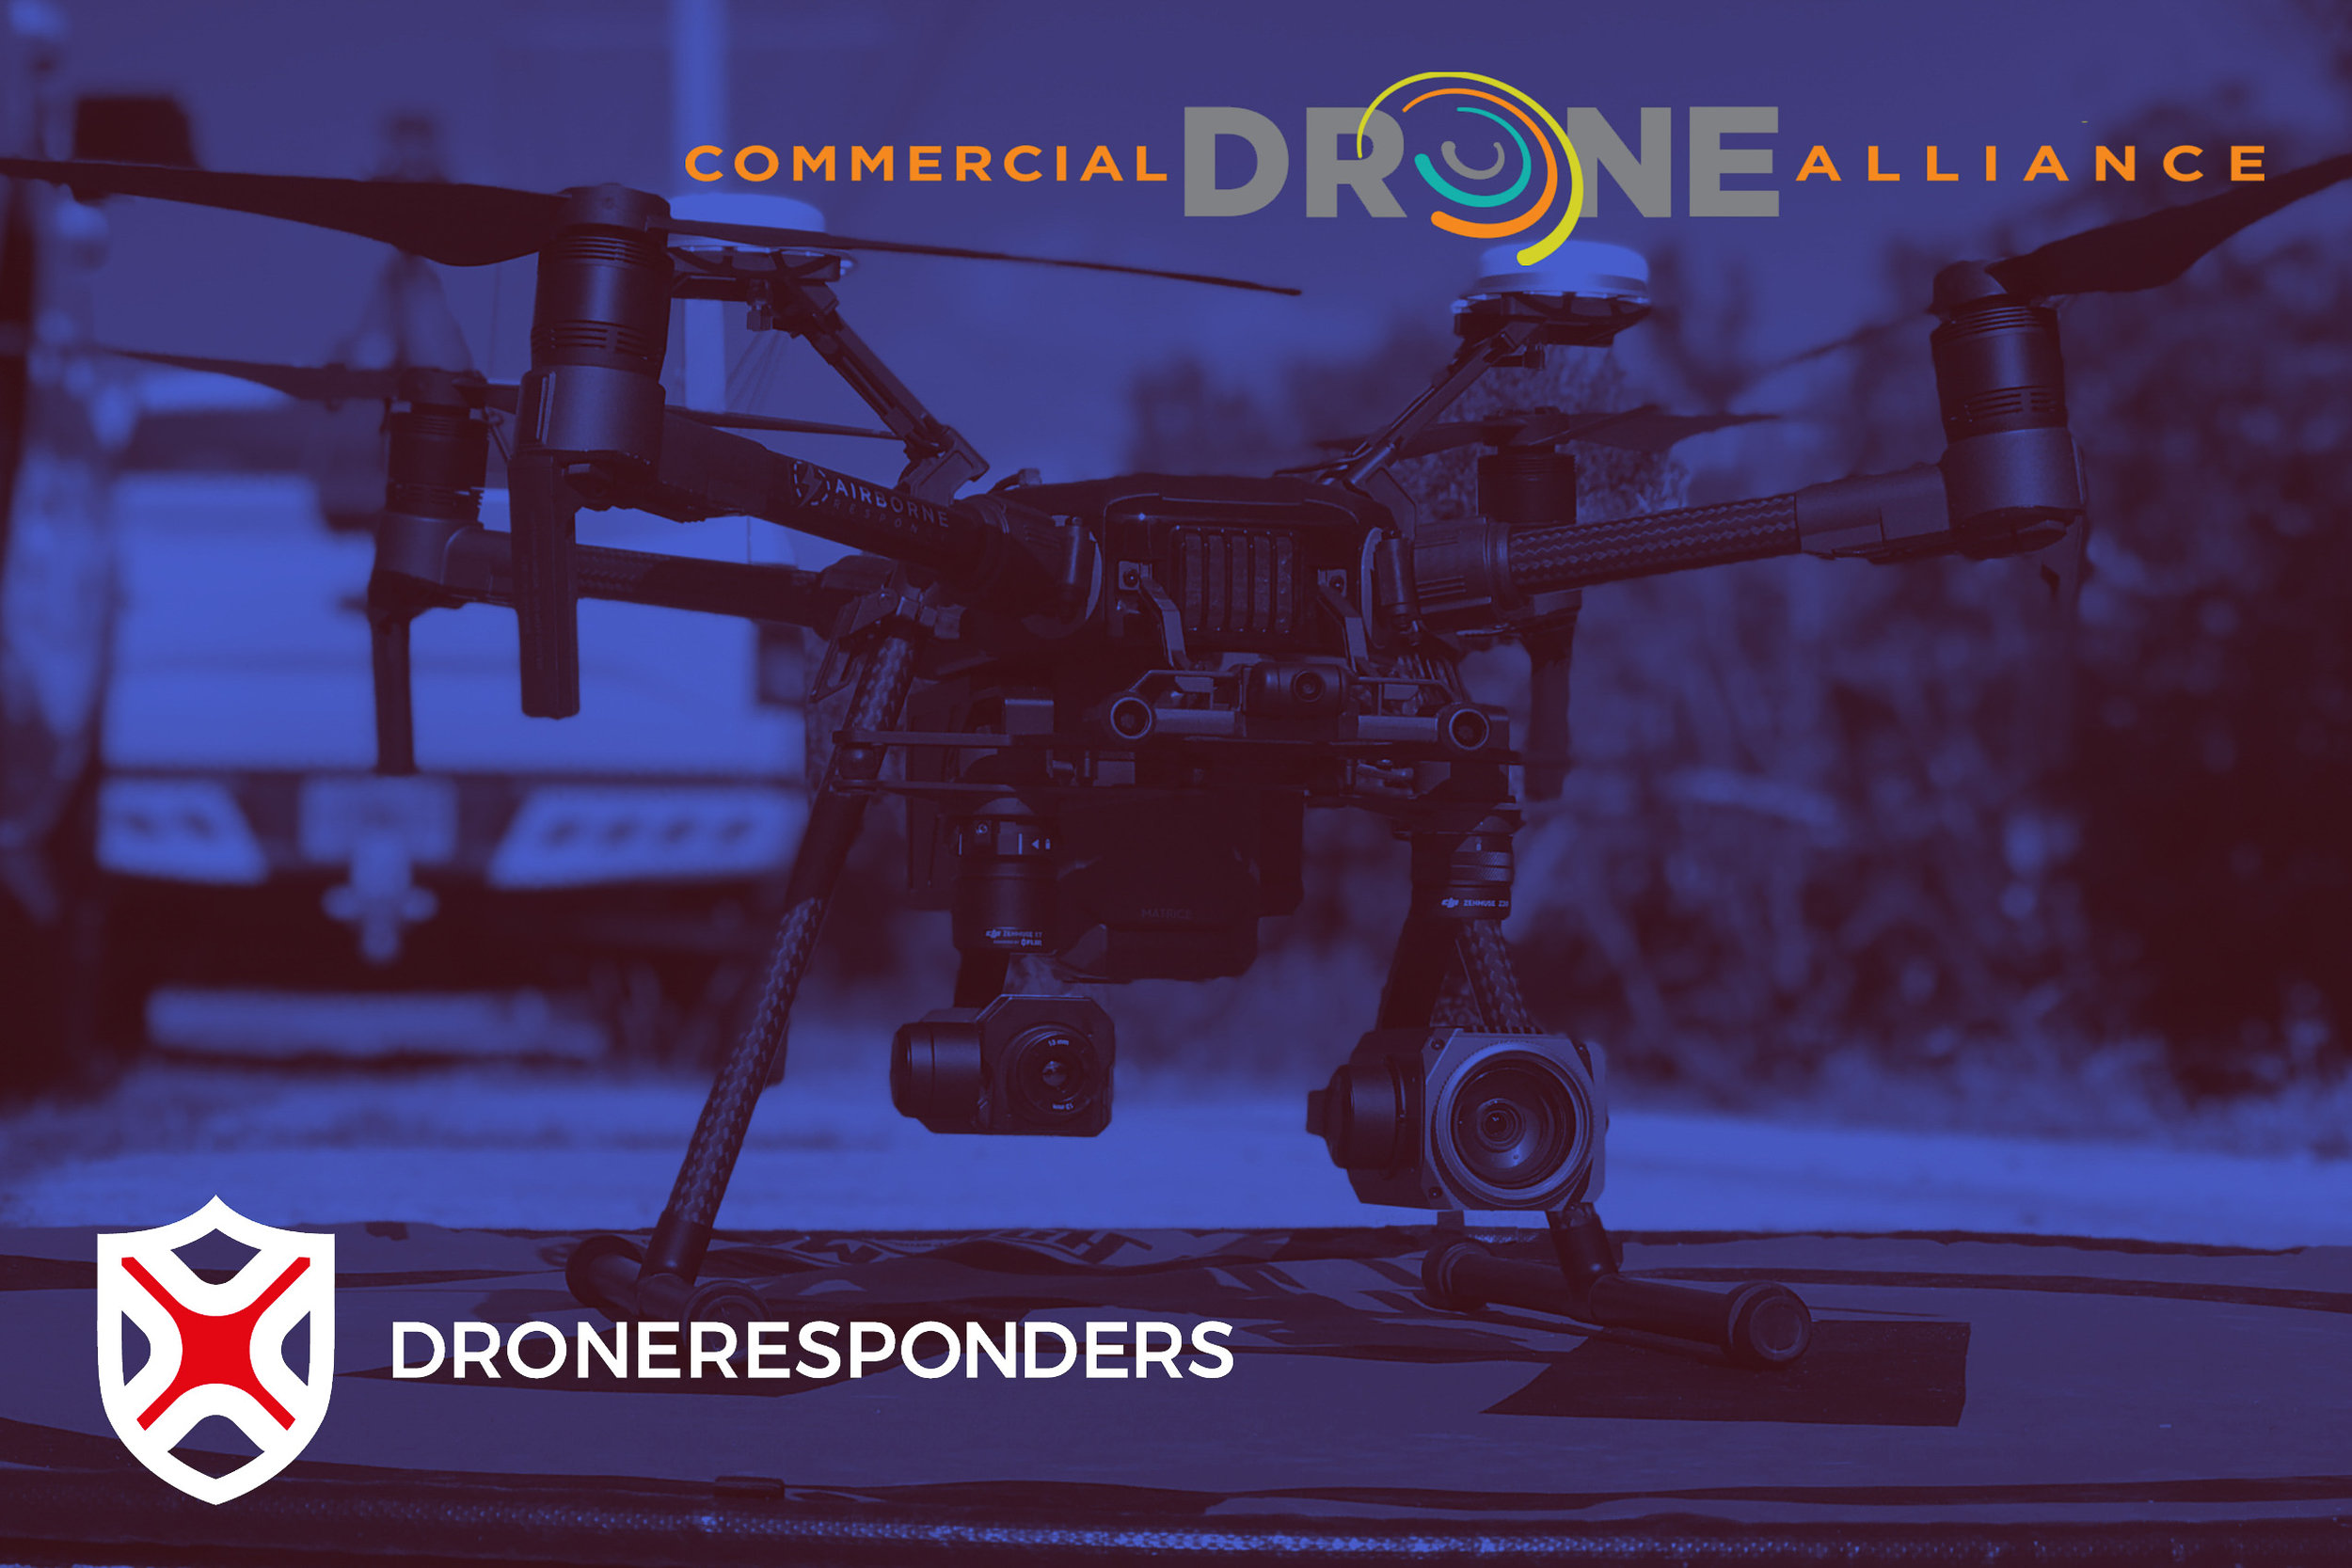 DRONERESPONDERS Commercial Drone Alliance Public Safety UAS.jpg